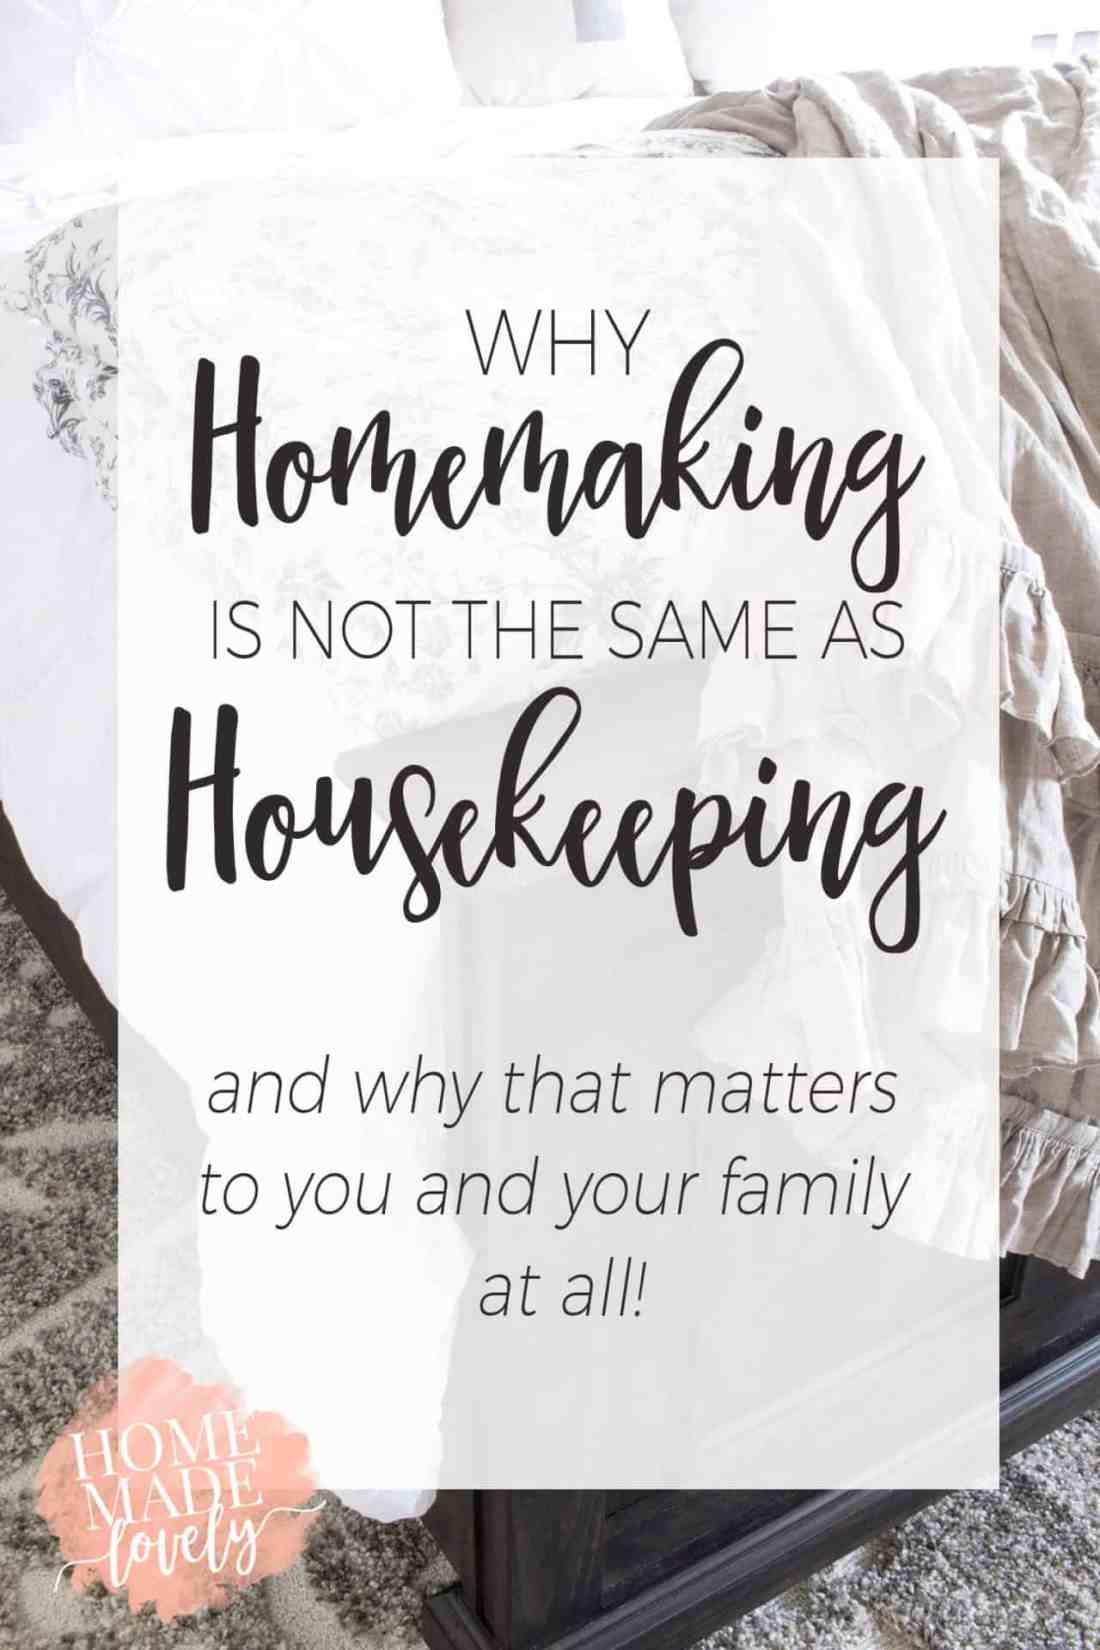 There are some fundamental differences between a housekeeper and a homemaker. Here's why homemaking is not the same as housekeeping!